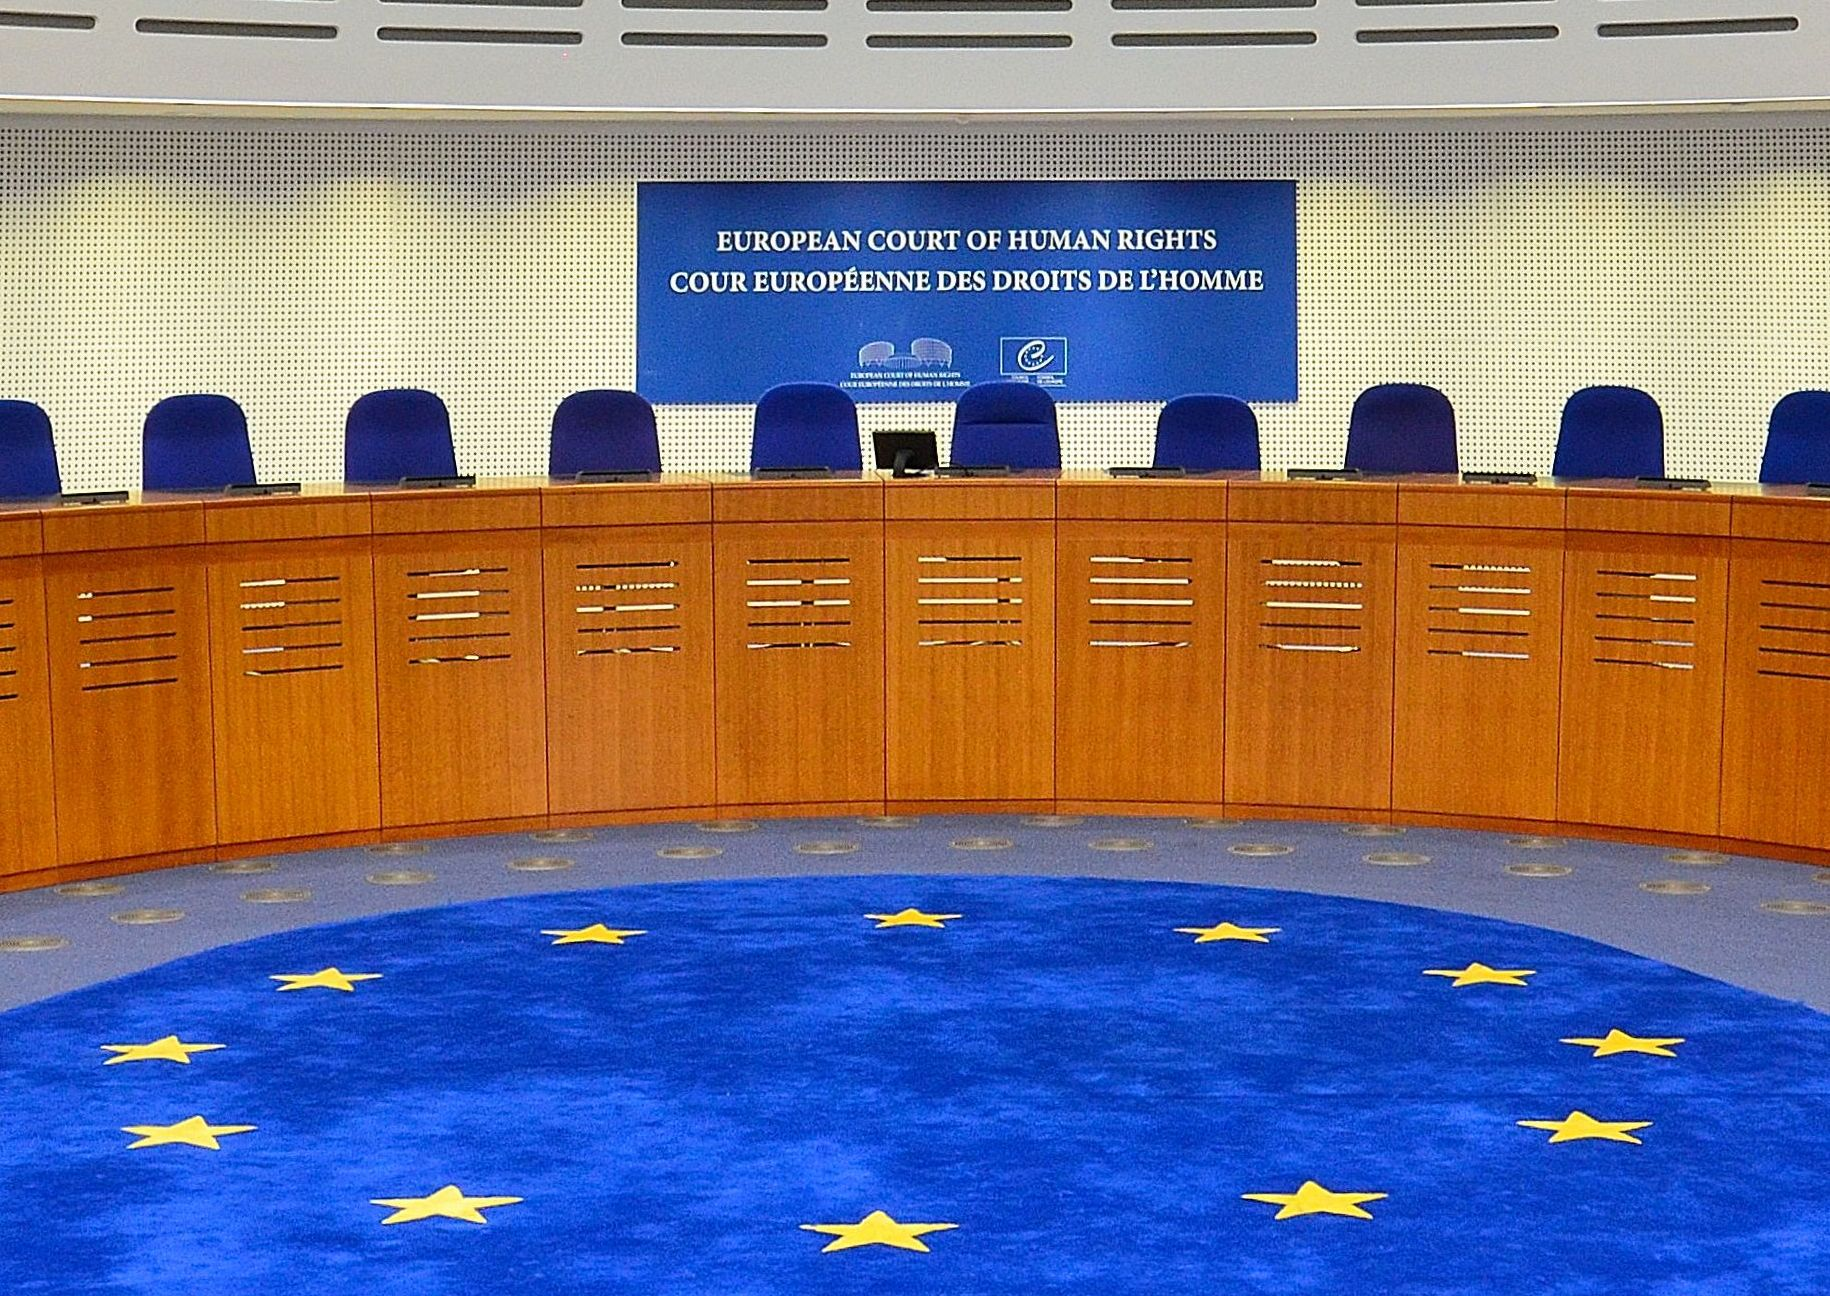 The court room of the European Court of Human Rights. (Wikimedia Commons)